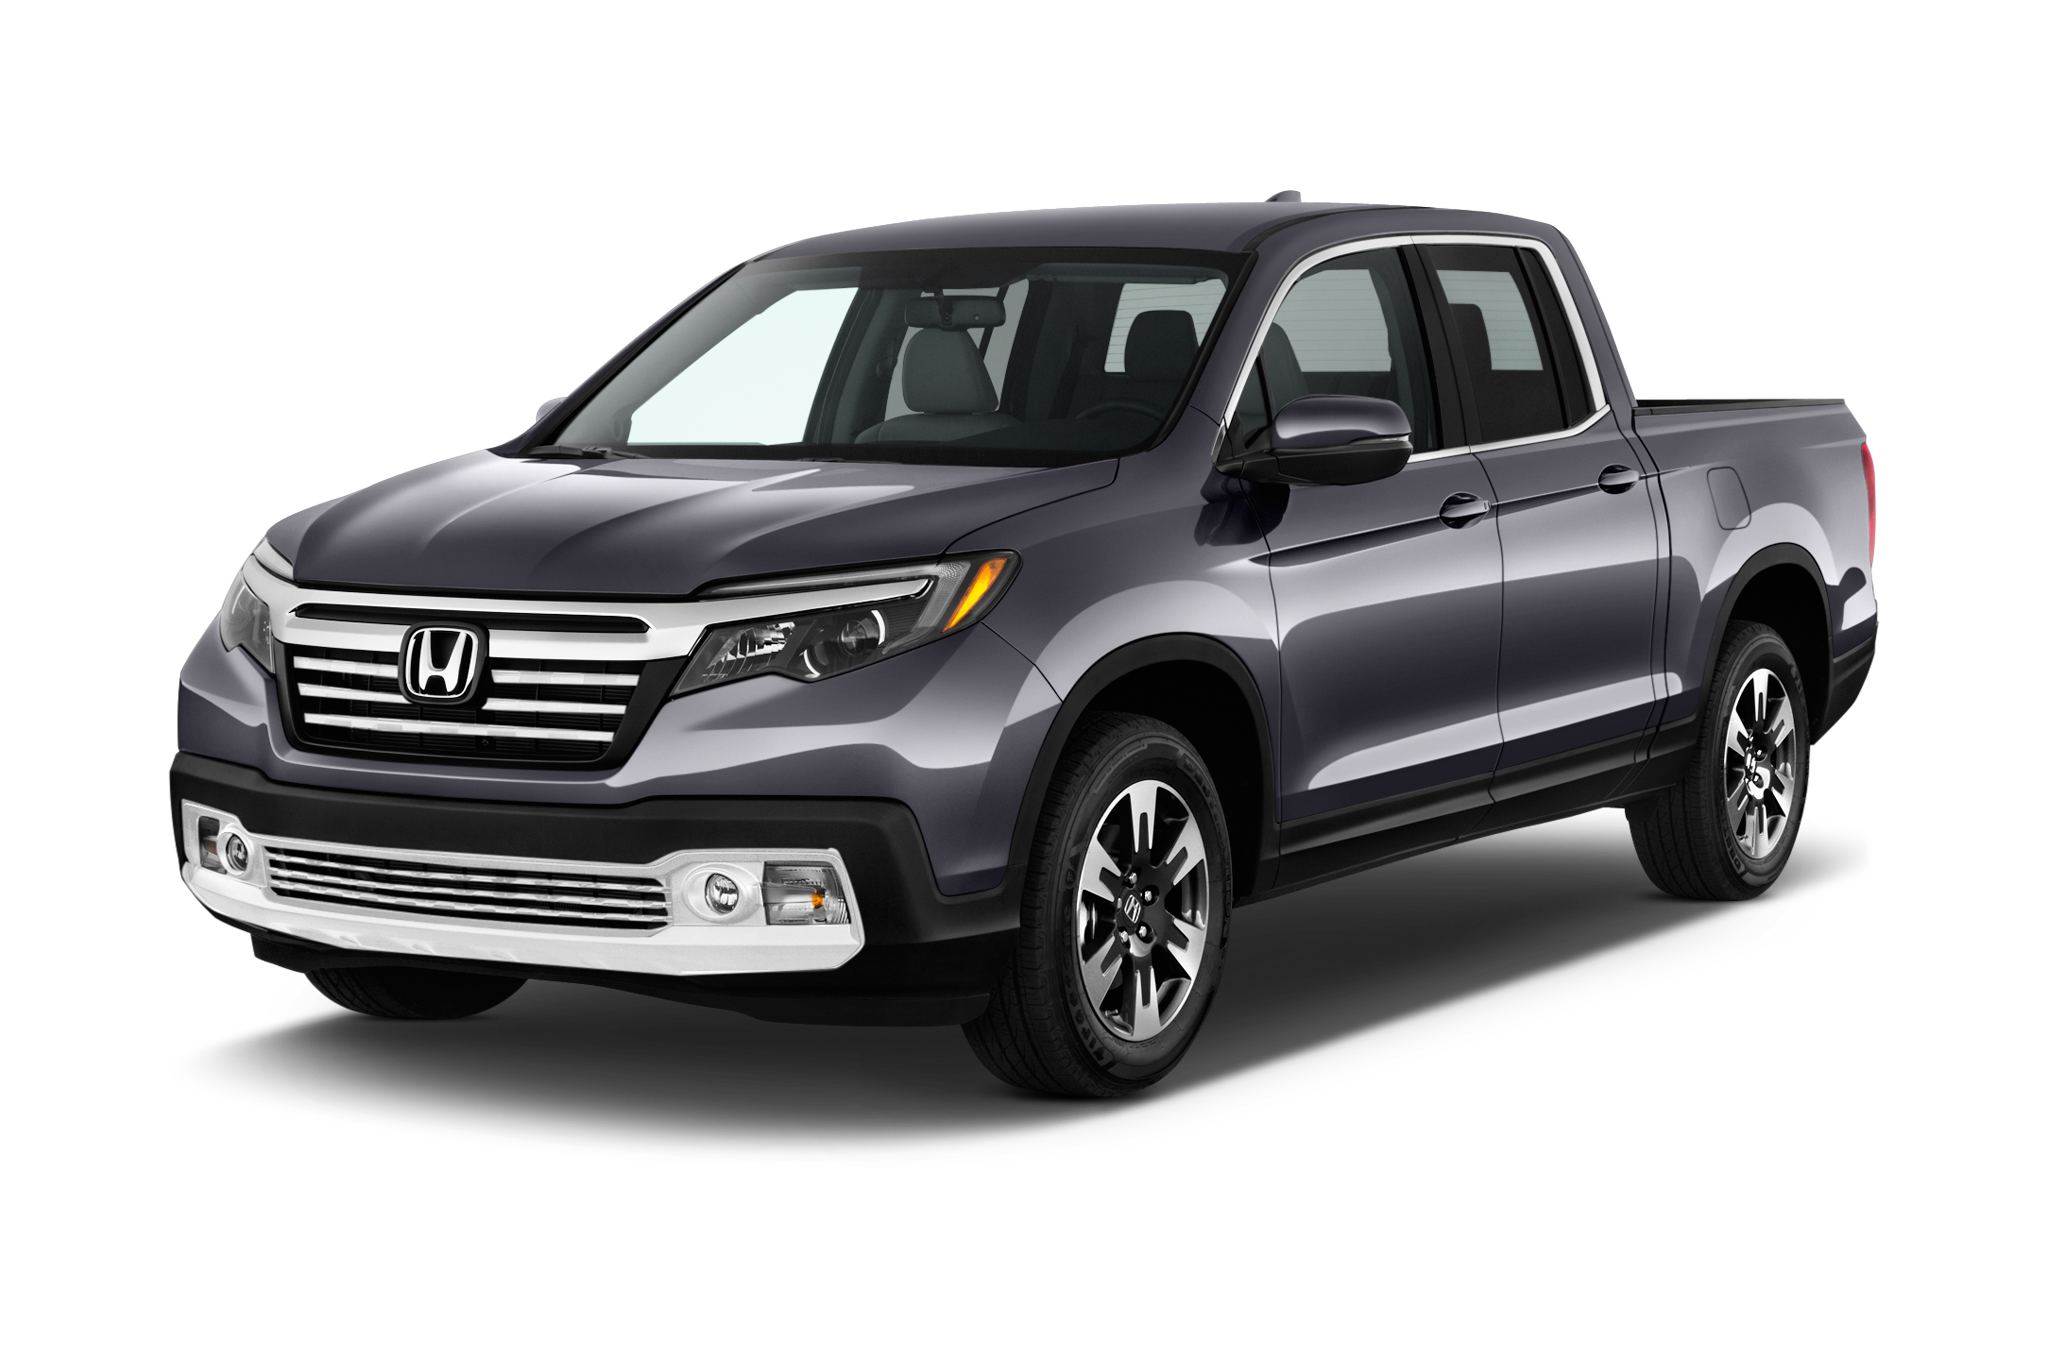 2019 Honda Ridgeline Overview - MSN Autos